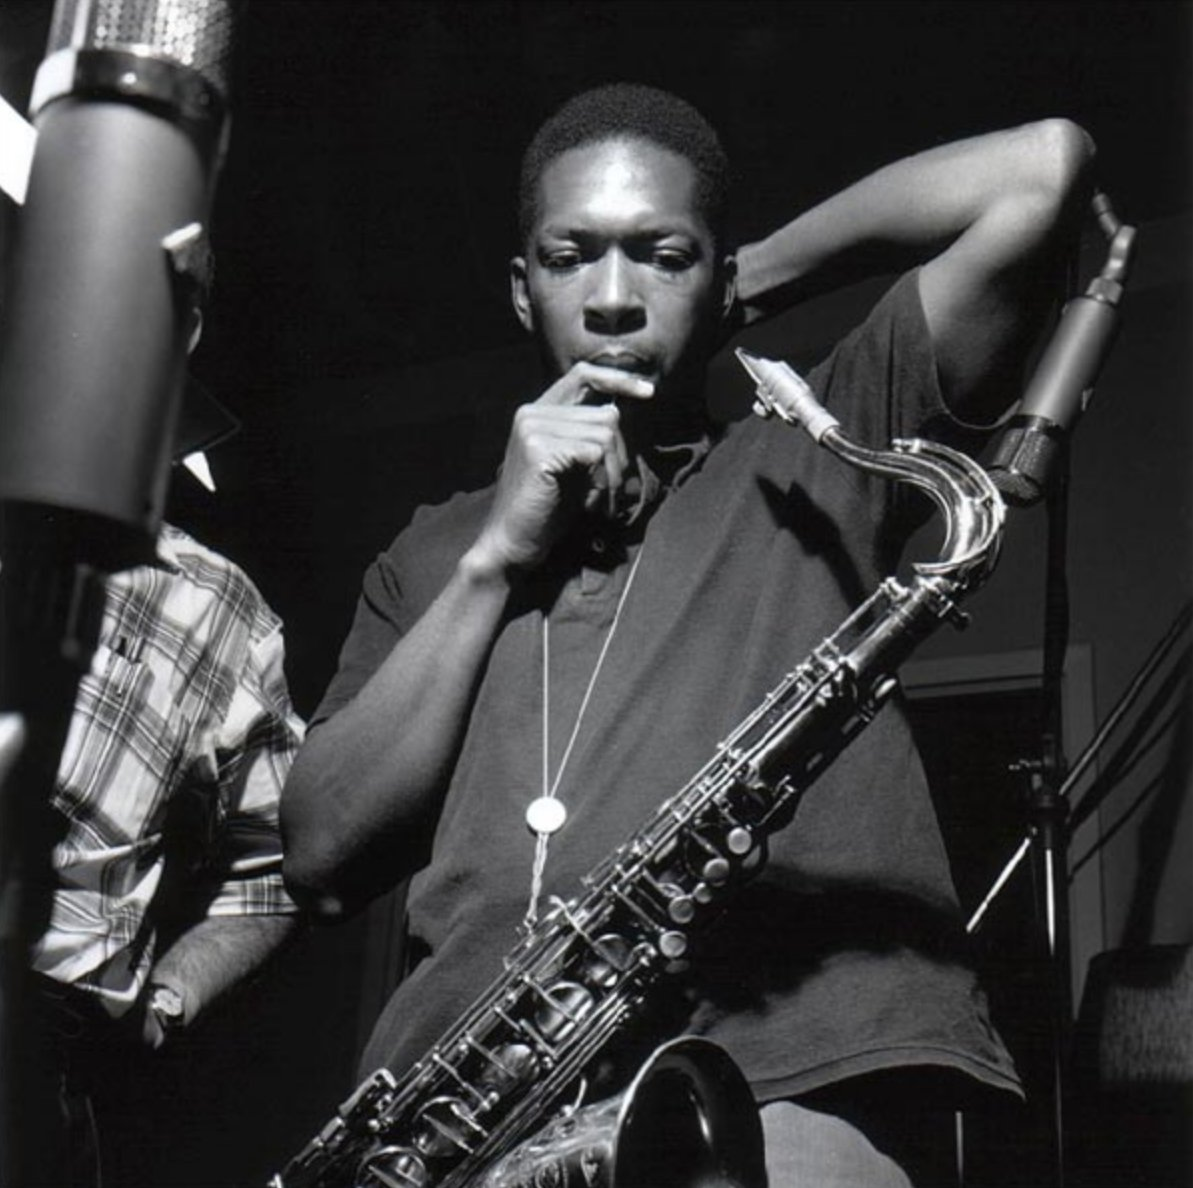 On the 50th anniversary of his death, 12 fascinating facts about John Coltrane: https://t.co/dfk8wT7vu3 #JohnColtrane #Jazz